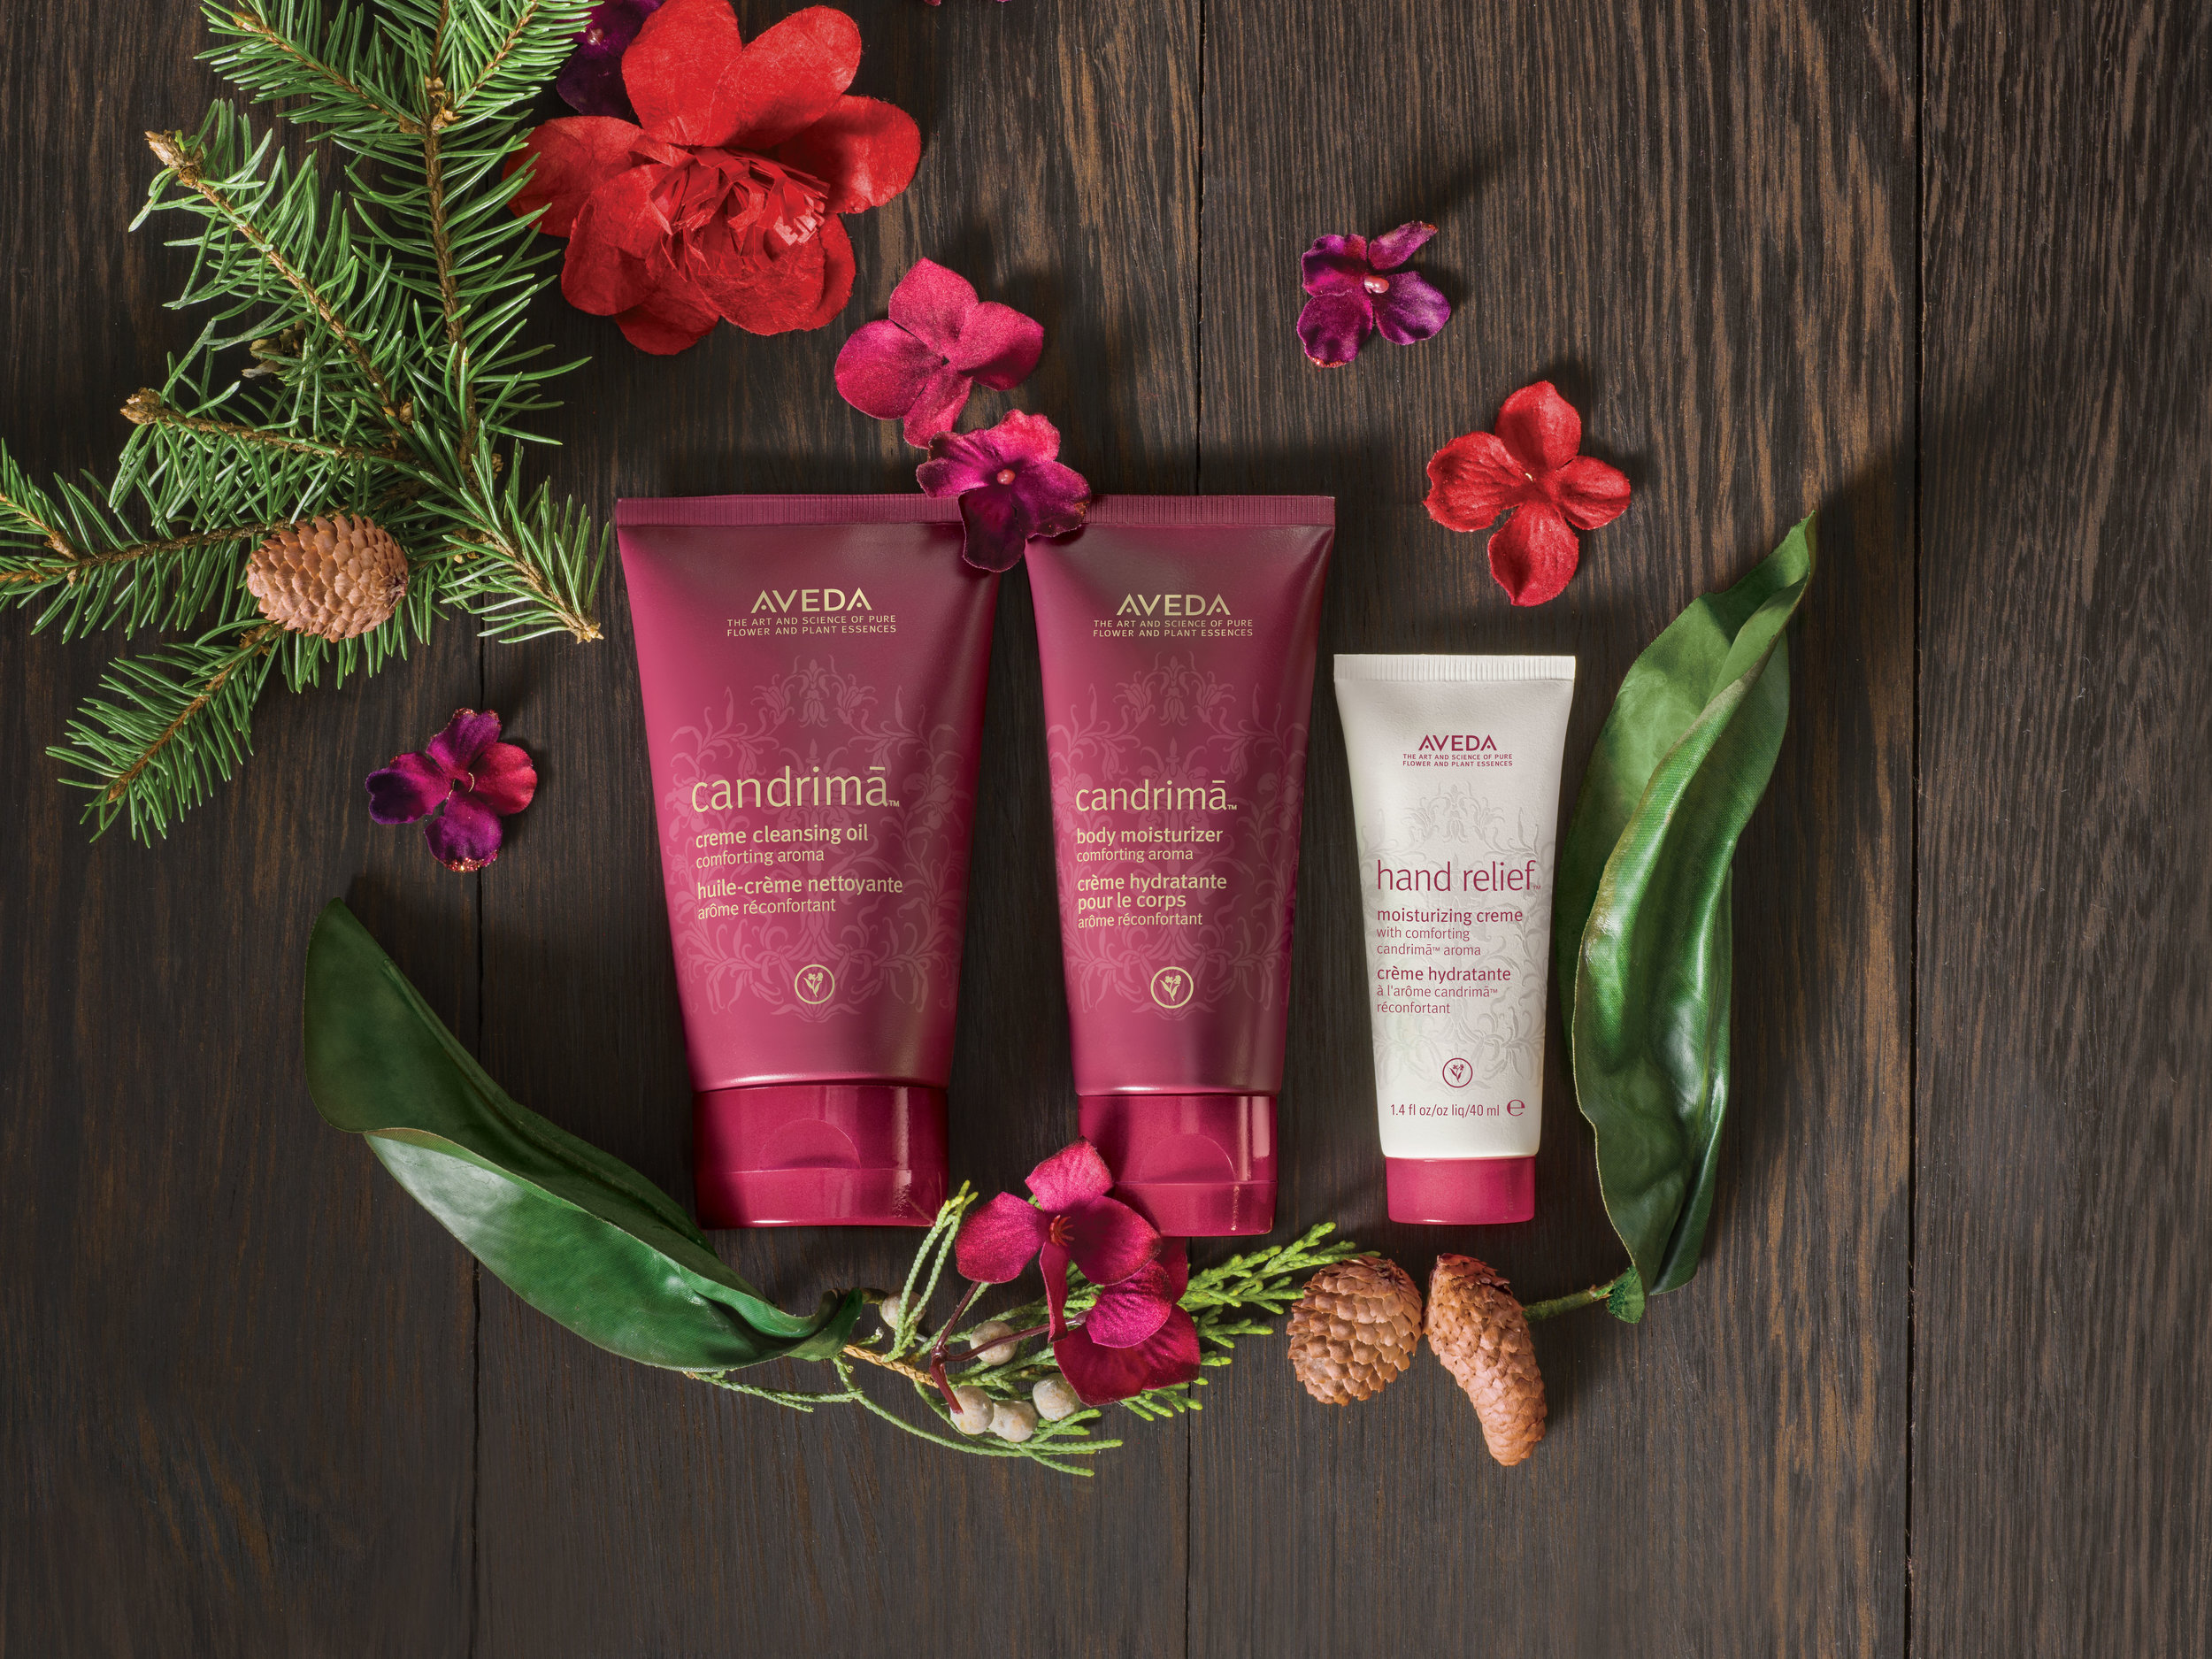 A Gift of Pure Comfort: $39.50  candrimā™creme cleansing oil, 125 ml candrimā™body moisturizer, 75 ml and relief™ moisturizing creme with candrimā™ aroma, 40 ml